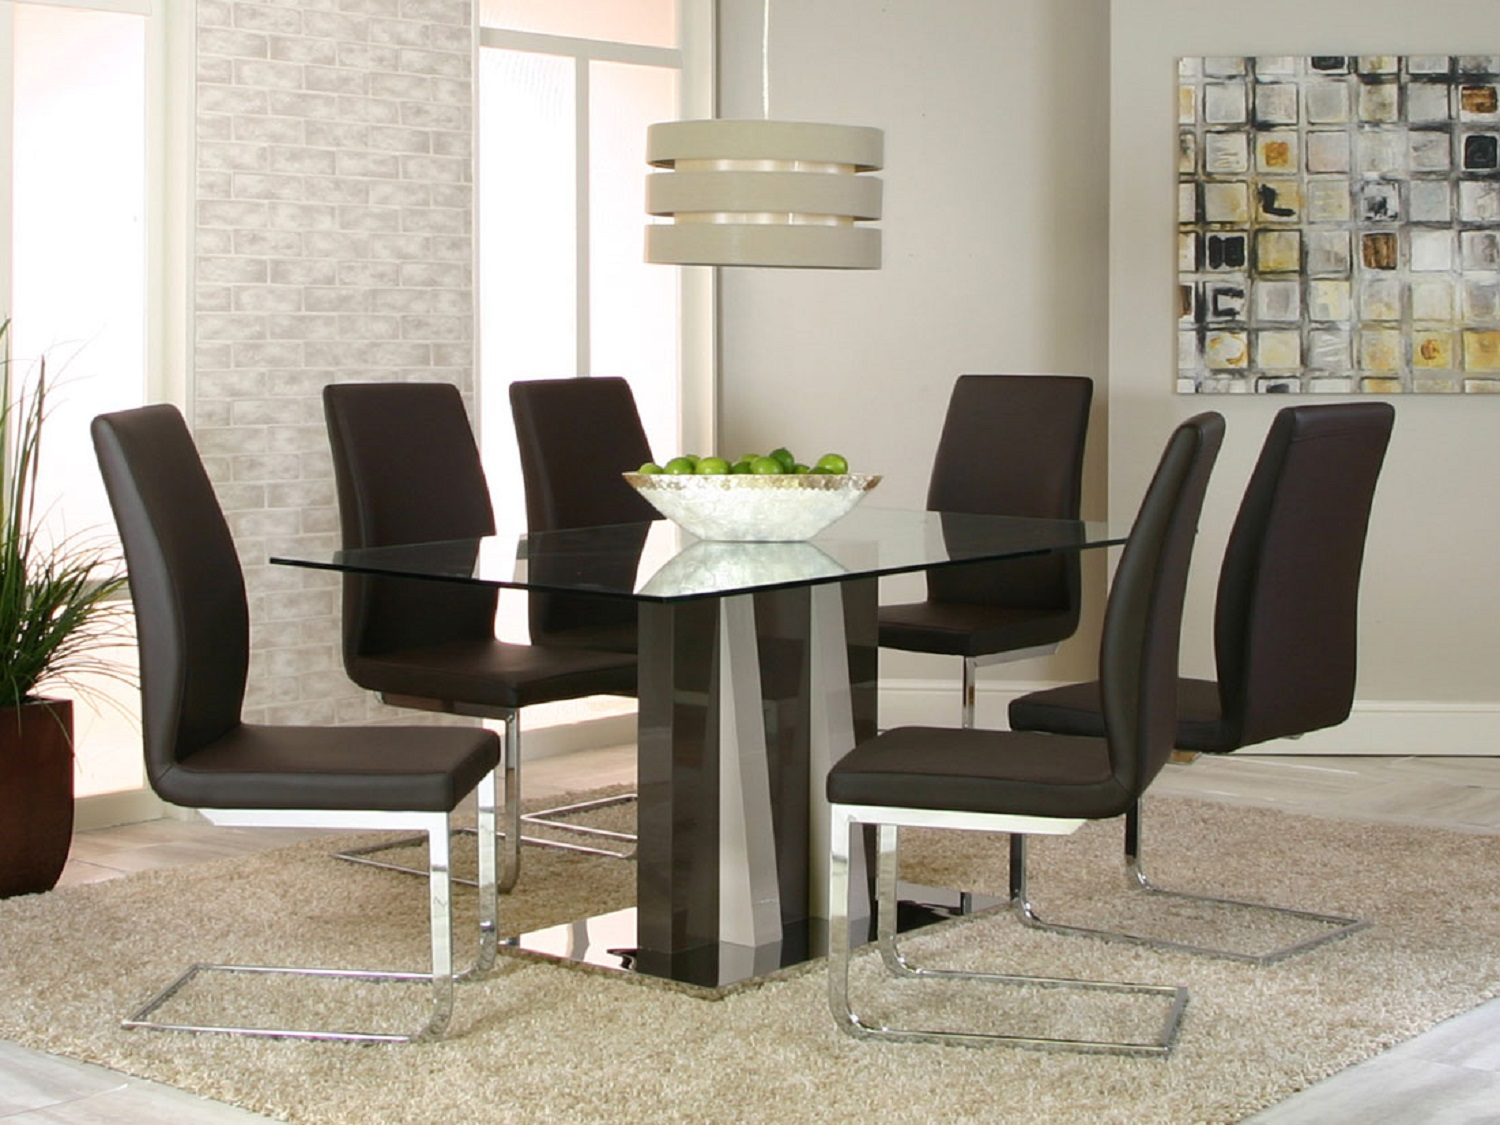 Wide range of Cramco Glass Top Dining Set available at a low price. Buy HEKA w/PORTOBELLO SIDE CHAIRS 5 PIECE SET Made of Glass Top up to 40% Off.